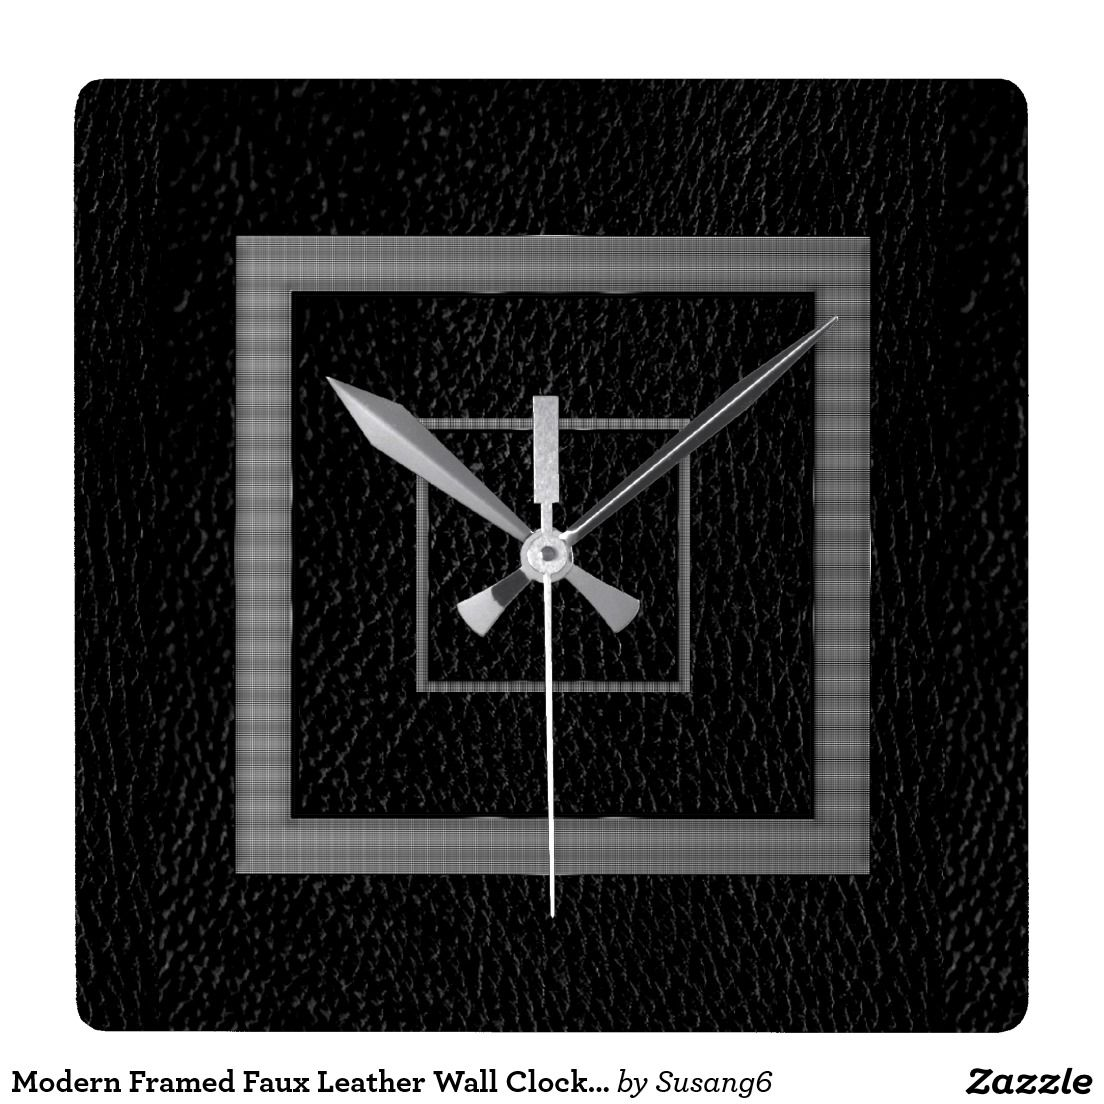 Modern framed faux leather wall clock black square wall clock modern framed faux leather wall clock black square wall clock amipublicfo Gallery